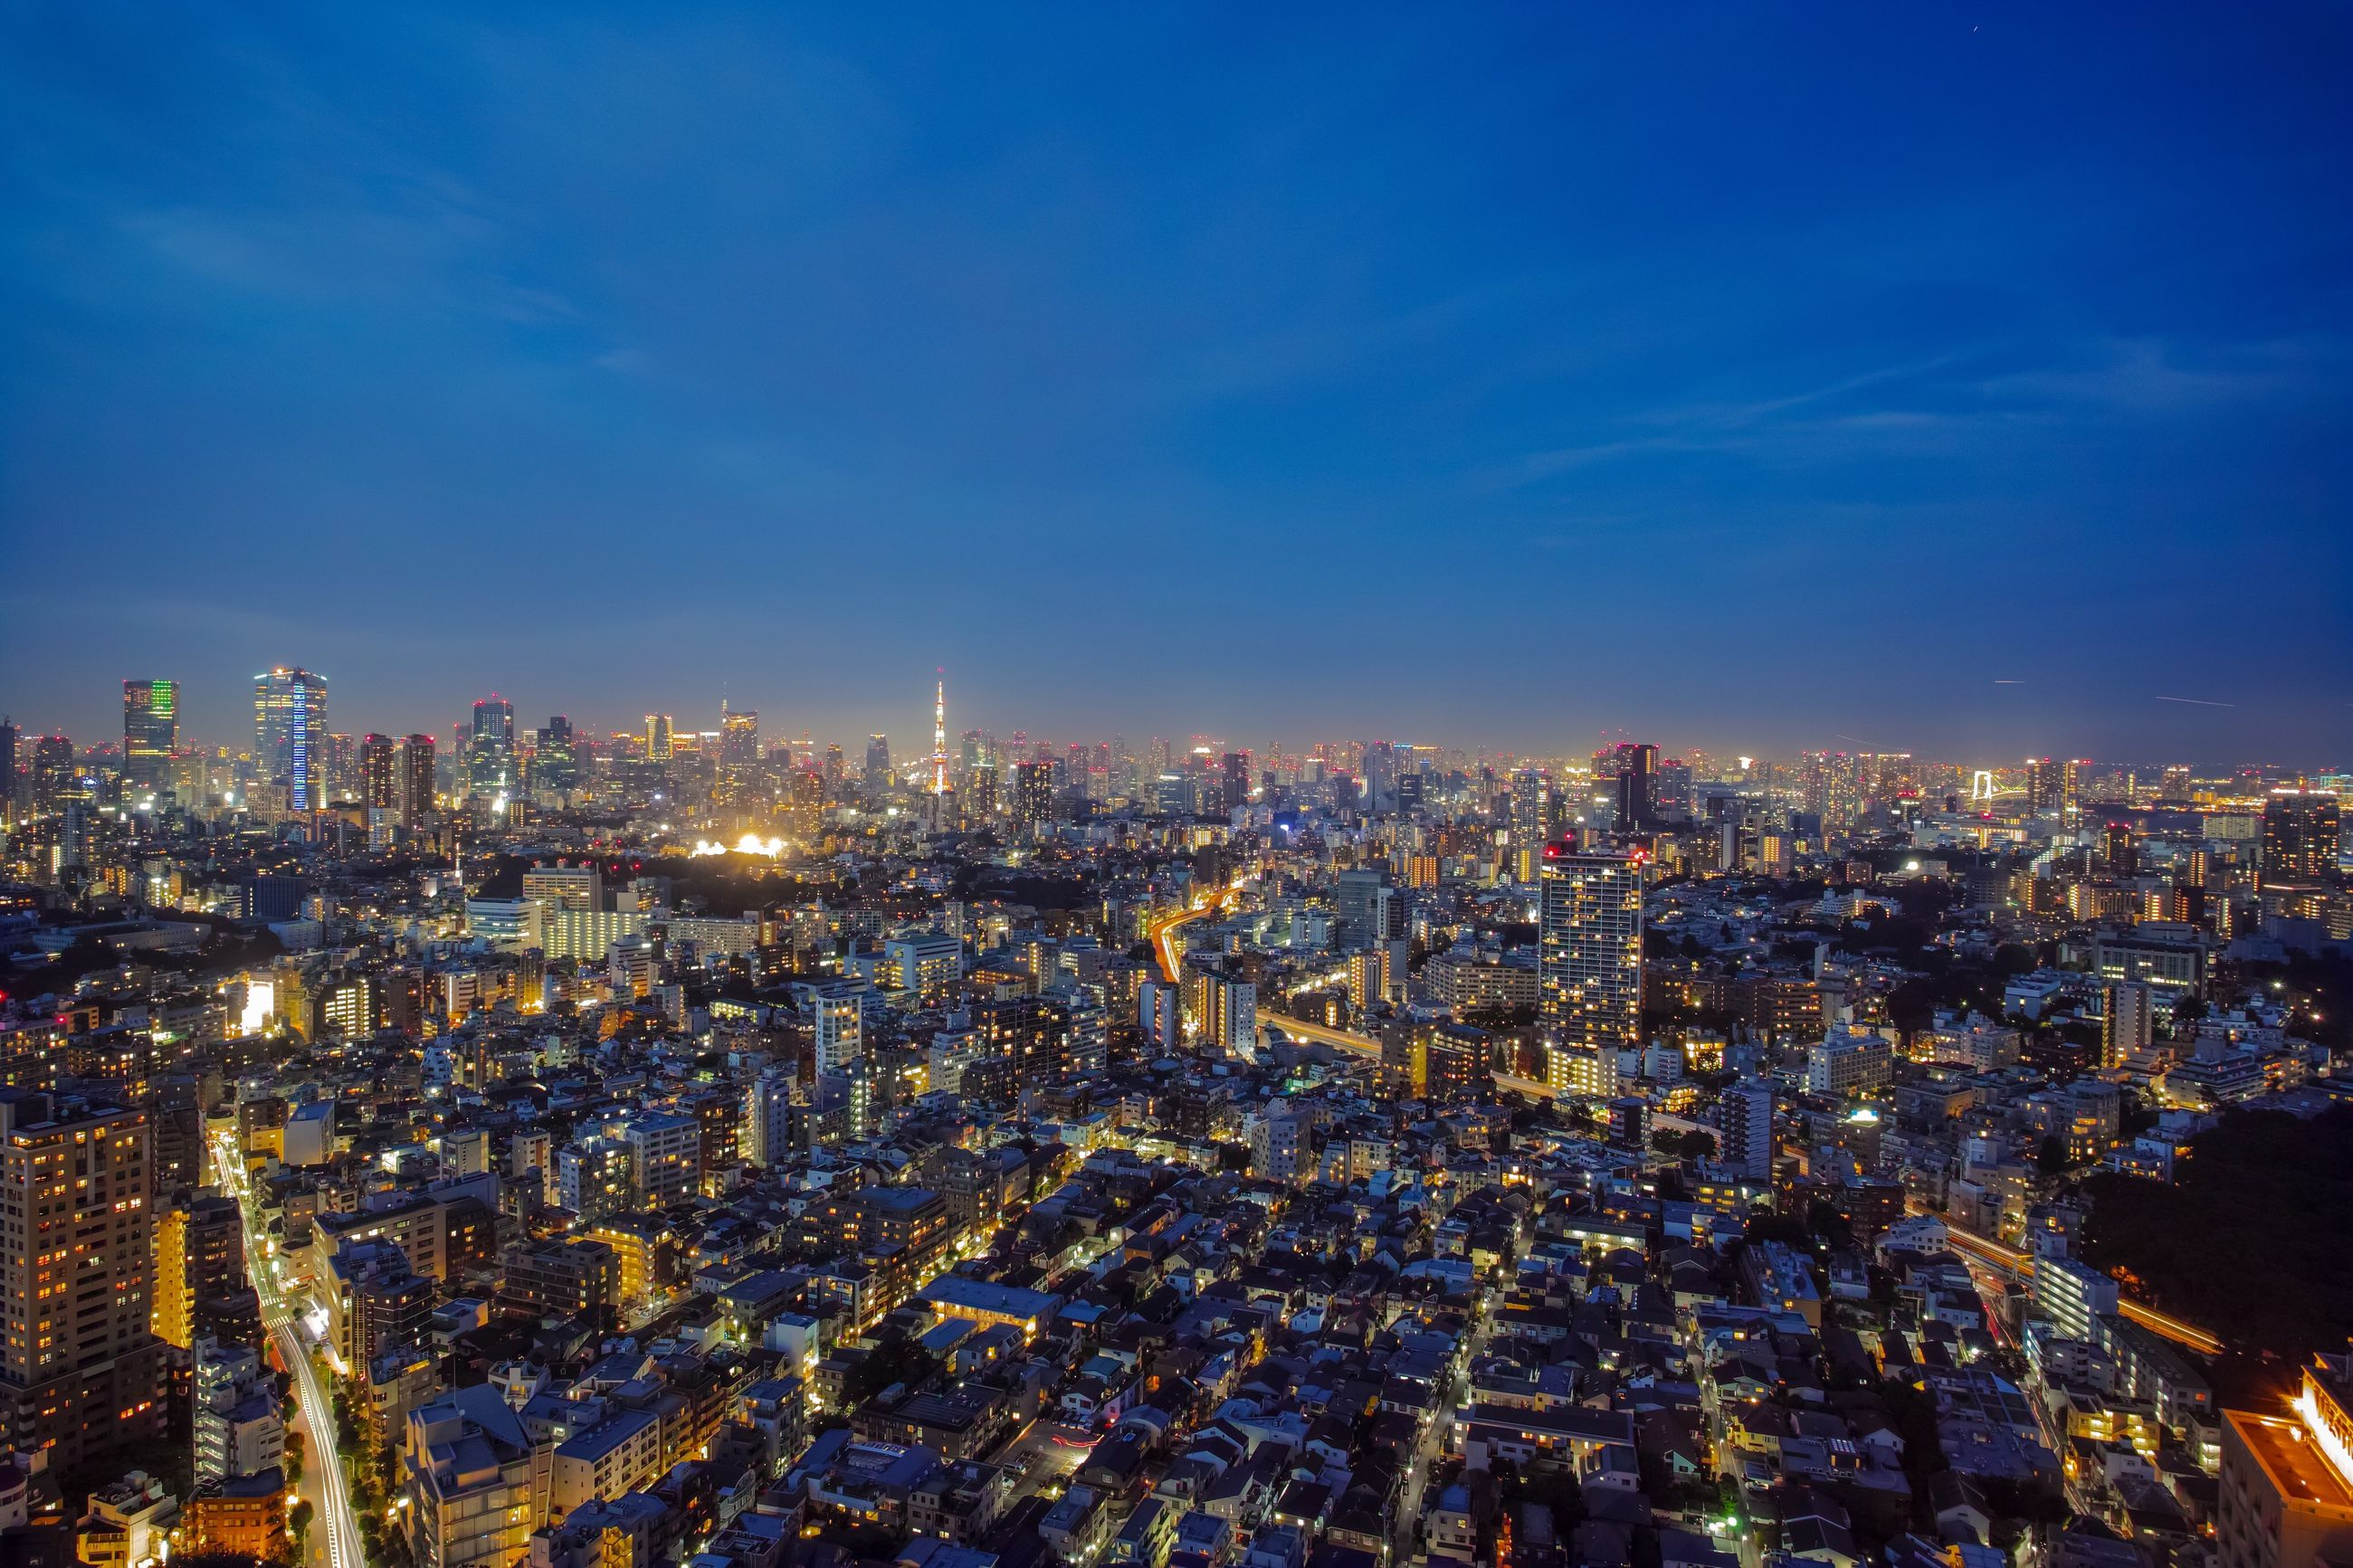 city, cityscape, architecture, illuminated, crowded, modern, skyscraper, building exterior, night, sky, built structure, outdoors, urban skyline